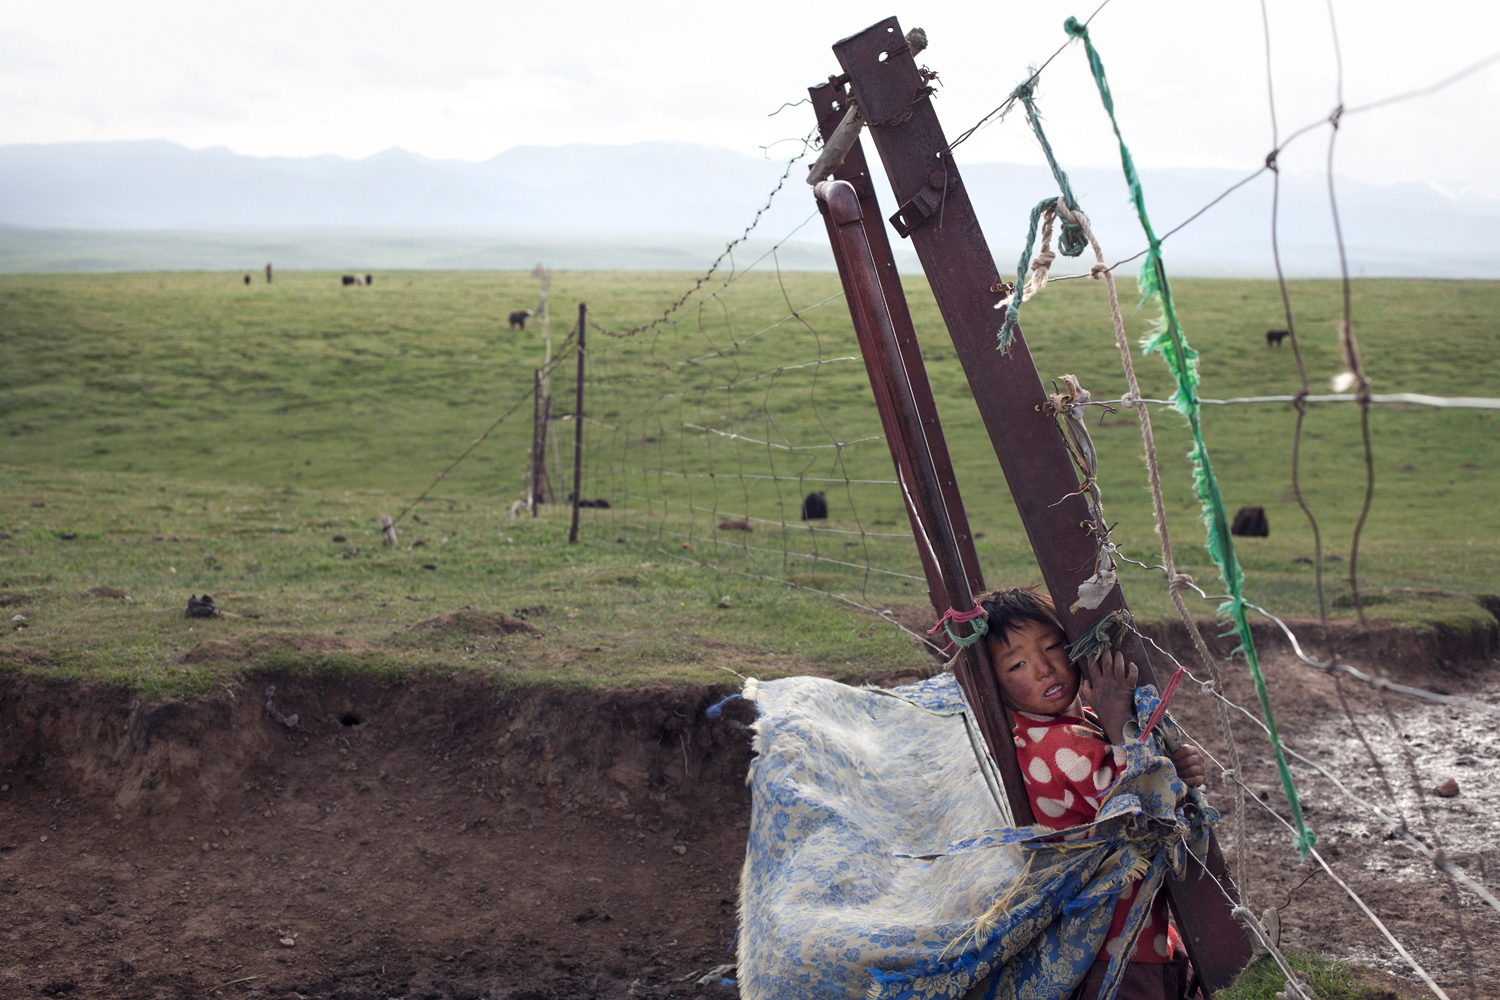 A Tibetan boy plays by his family's property fence, Duo Fu Dun, Qinghai.